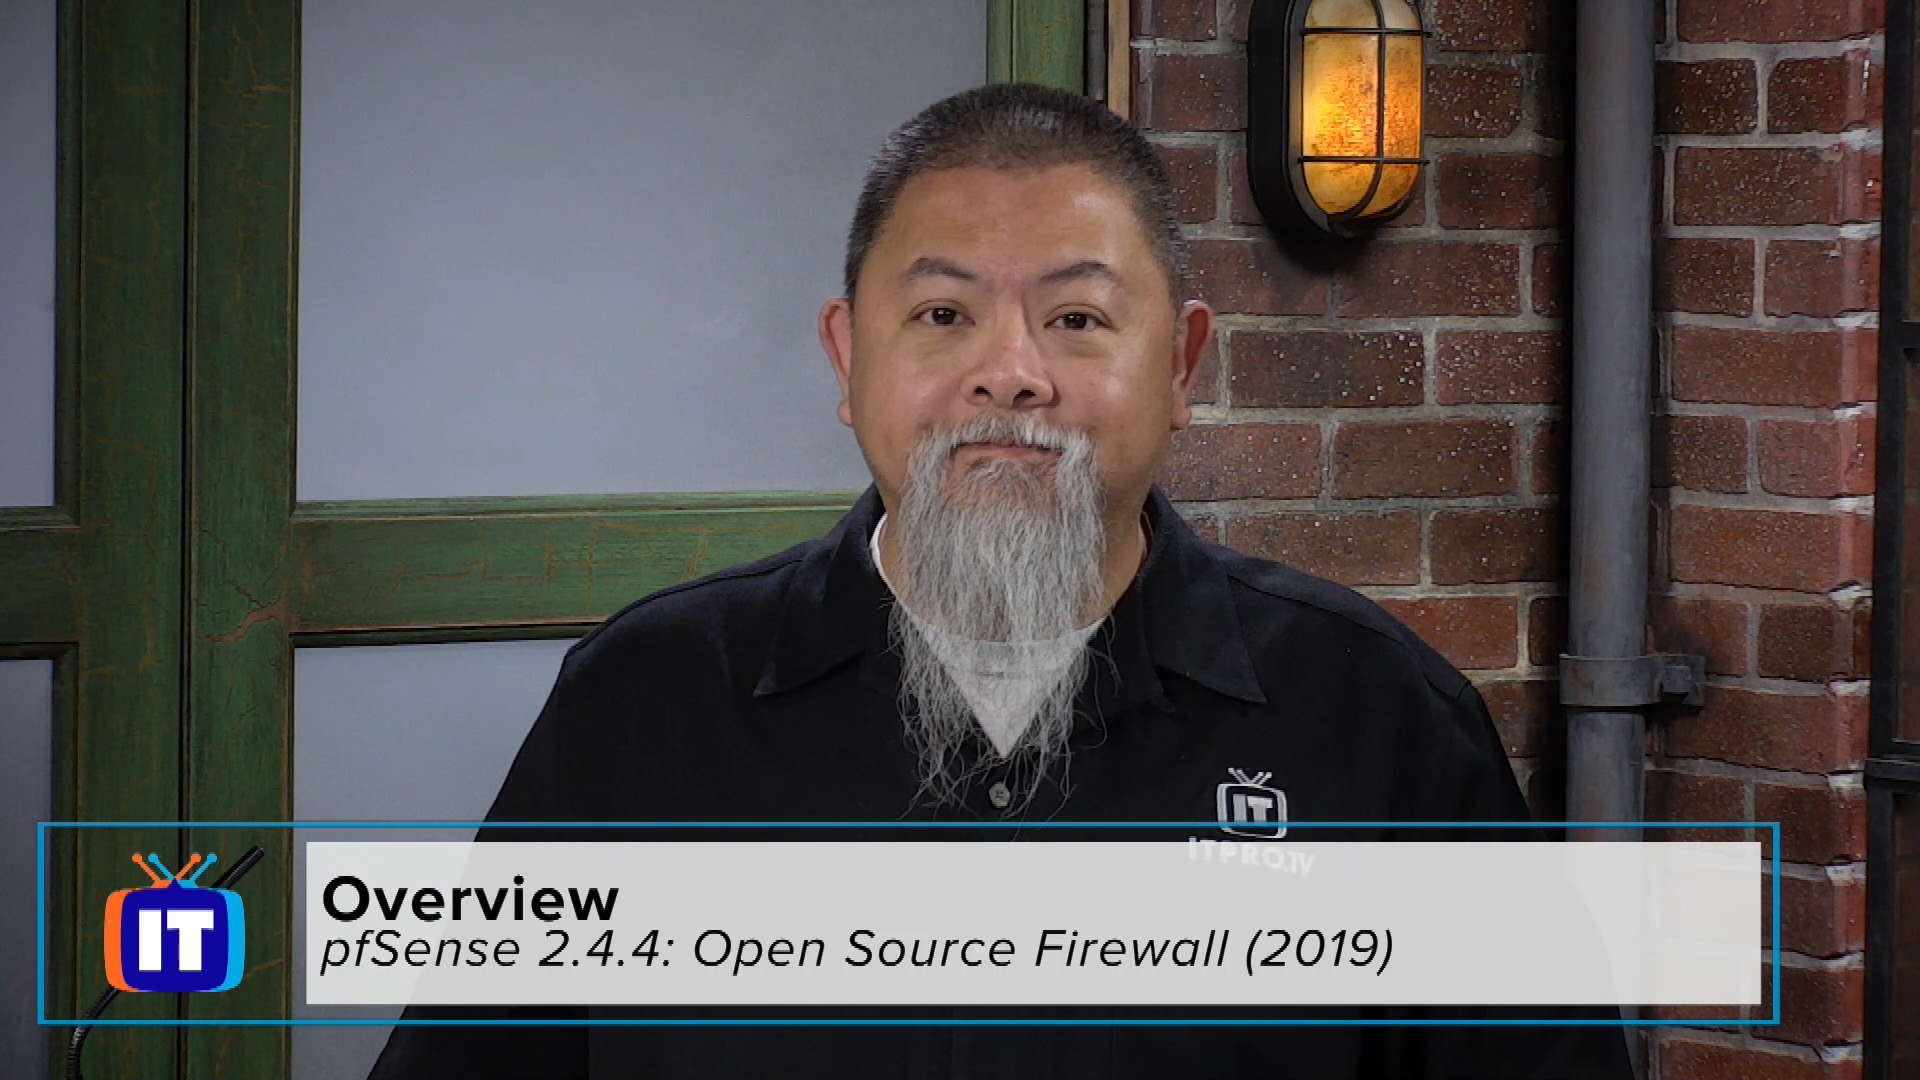 pfSense 2 4 4: Open Source Firewall (2019)